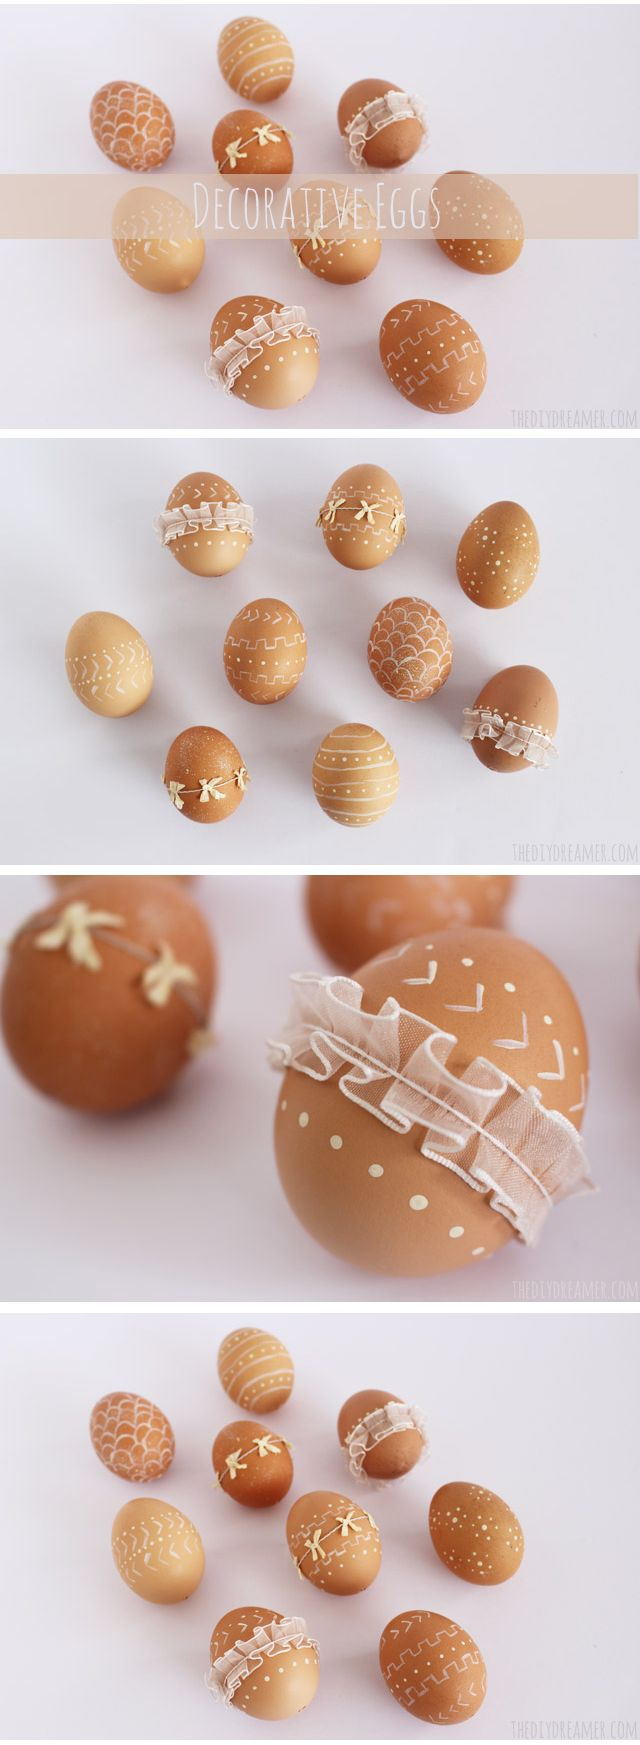 Decorative eggs trendy easter eggs decorated with paint and ribbon